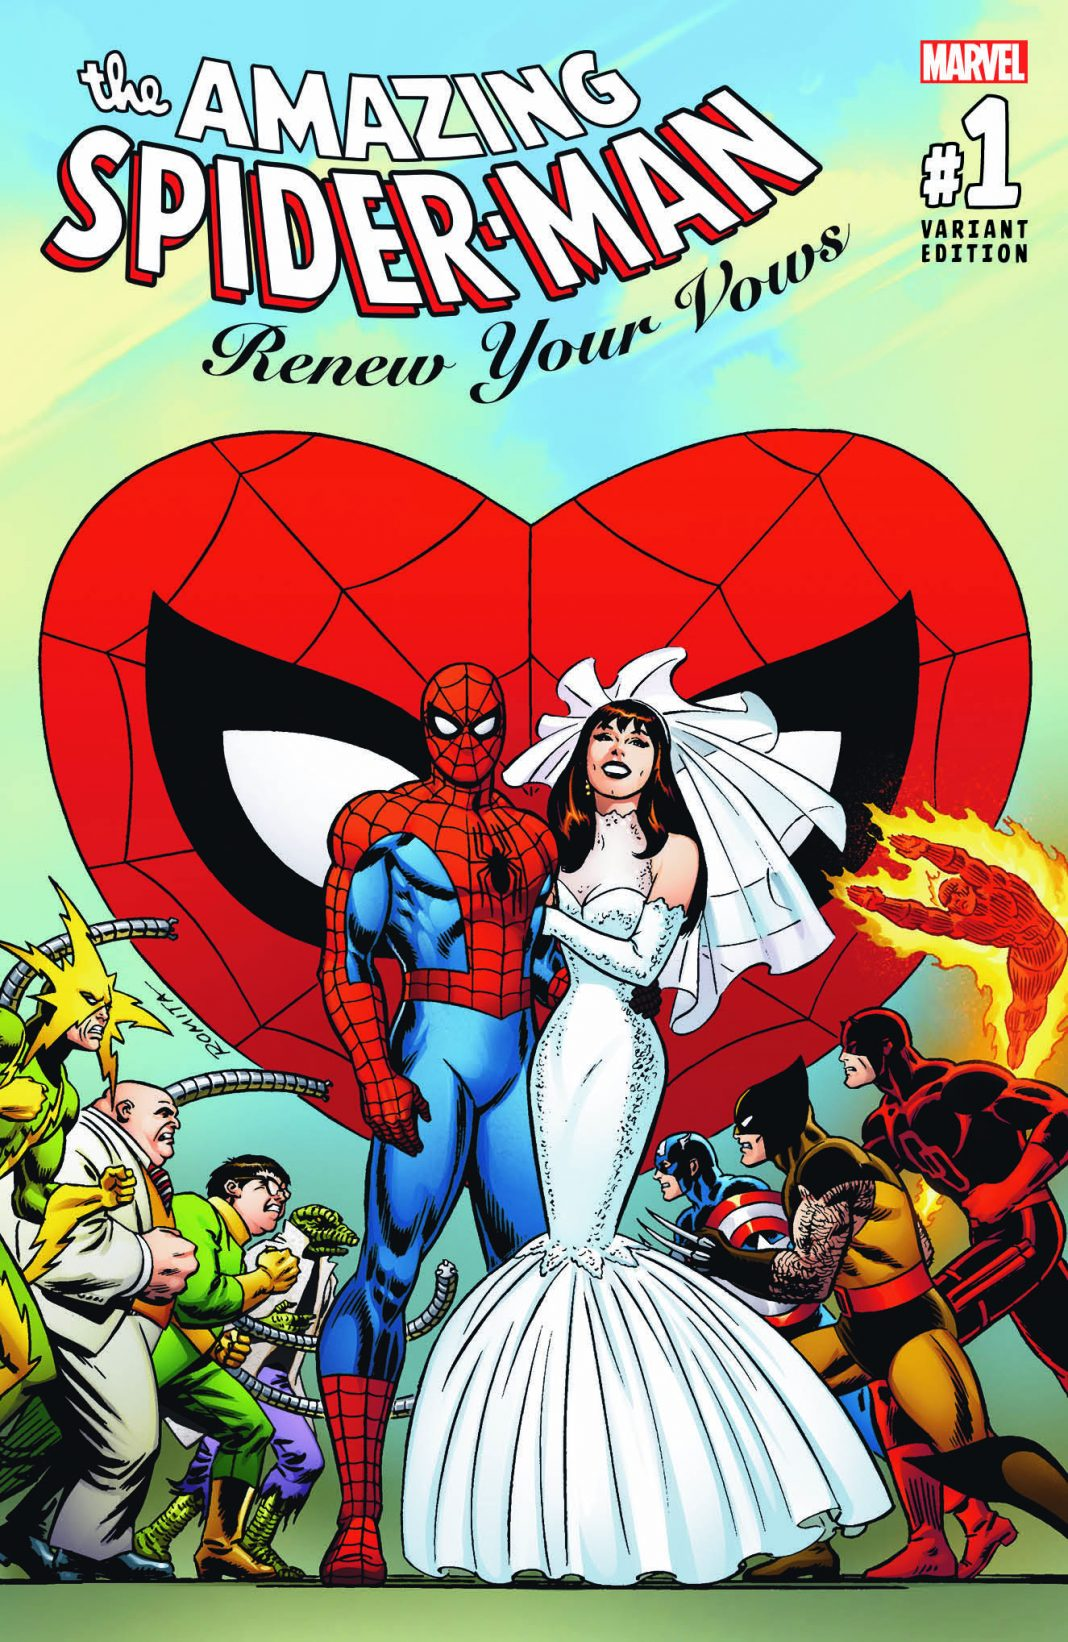 AMAZING SPIDER-MAN: RENEW YOUR VOWS #1 Top Secret Artist Variant Revealed!